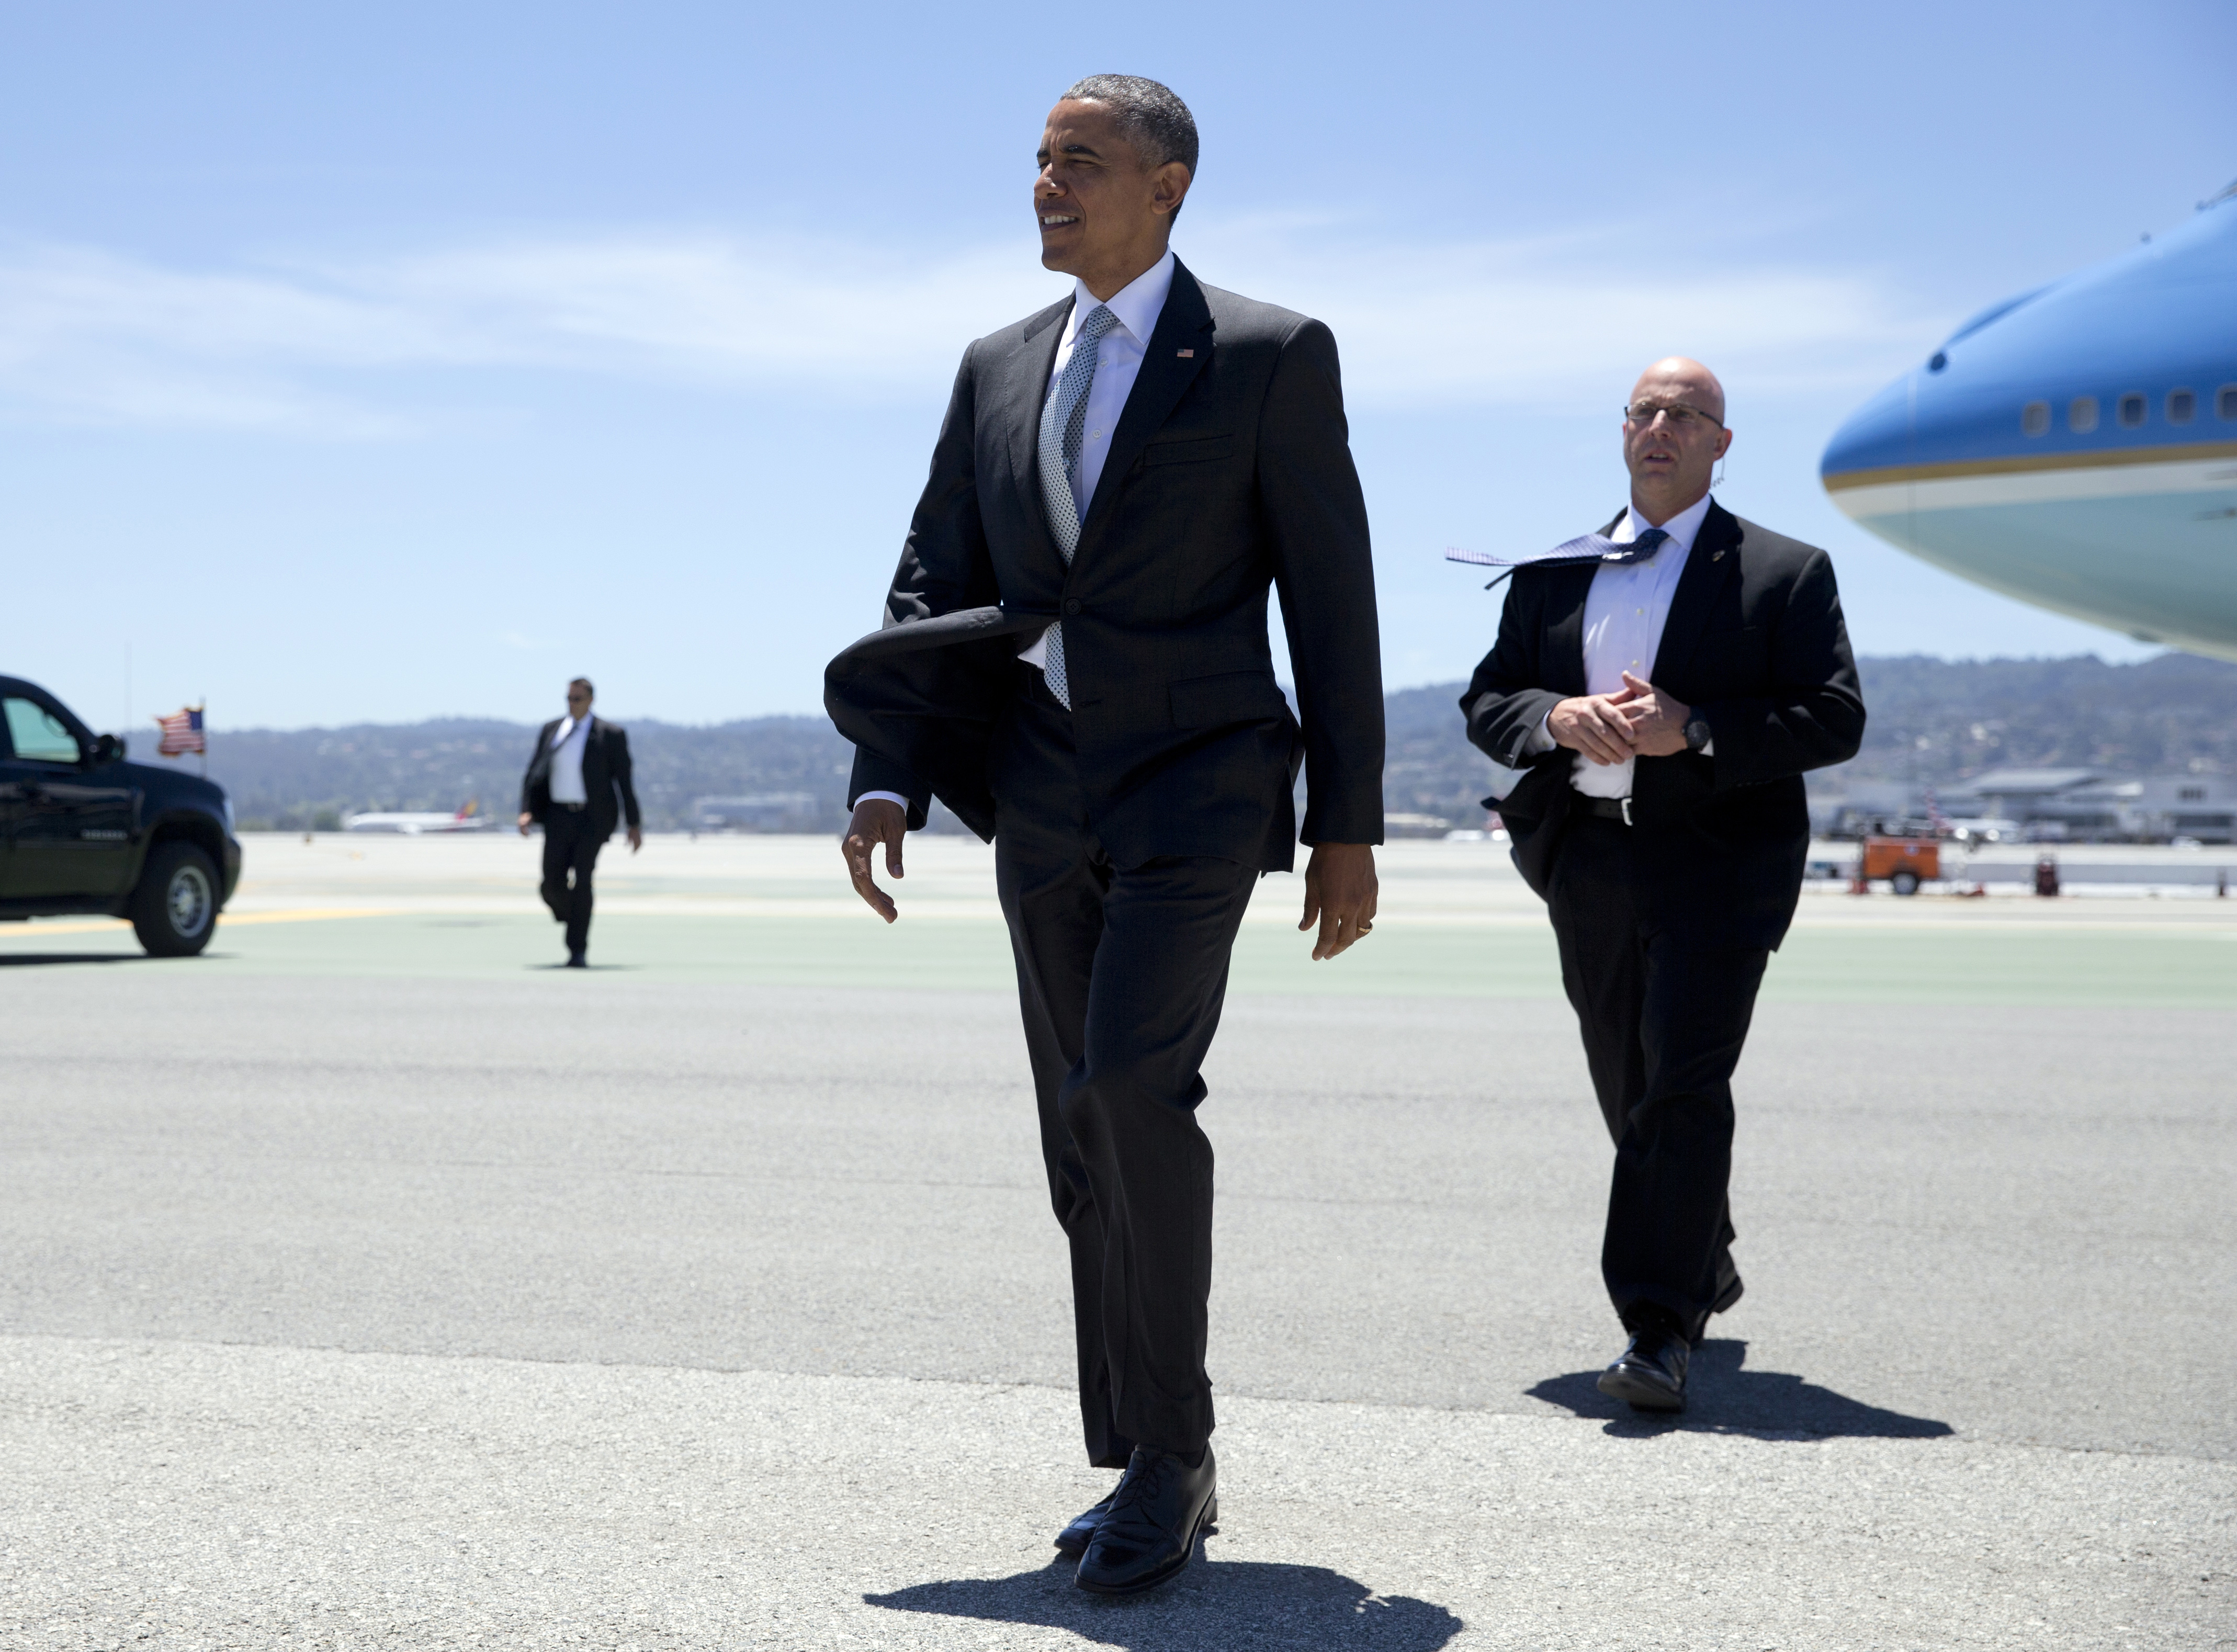 President Barack Obama walks across the tarmac to greet people as he arrives on Air Force One at San Francisco International airport June 19, 2015.